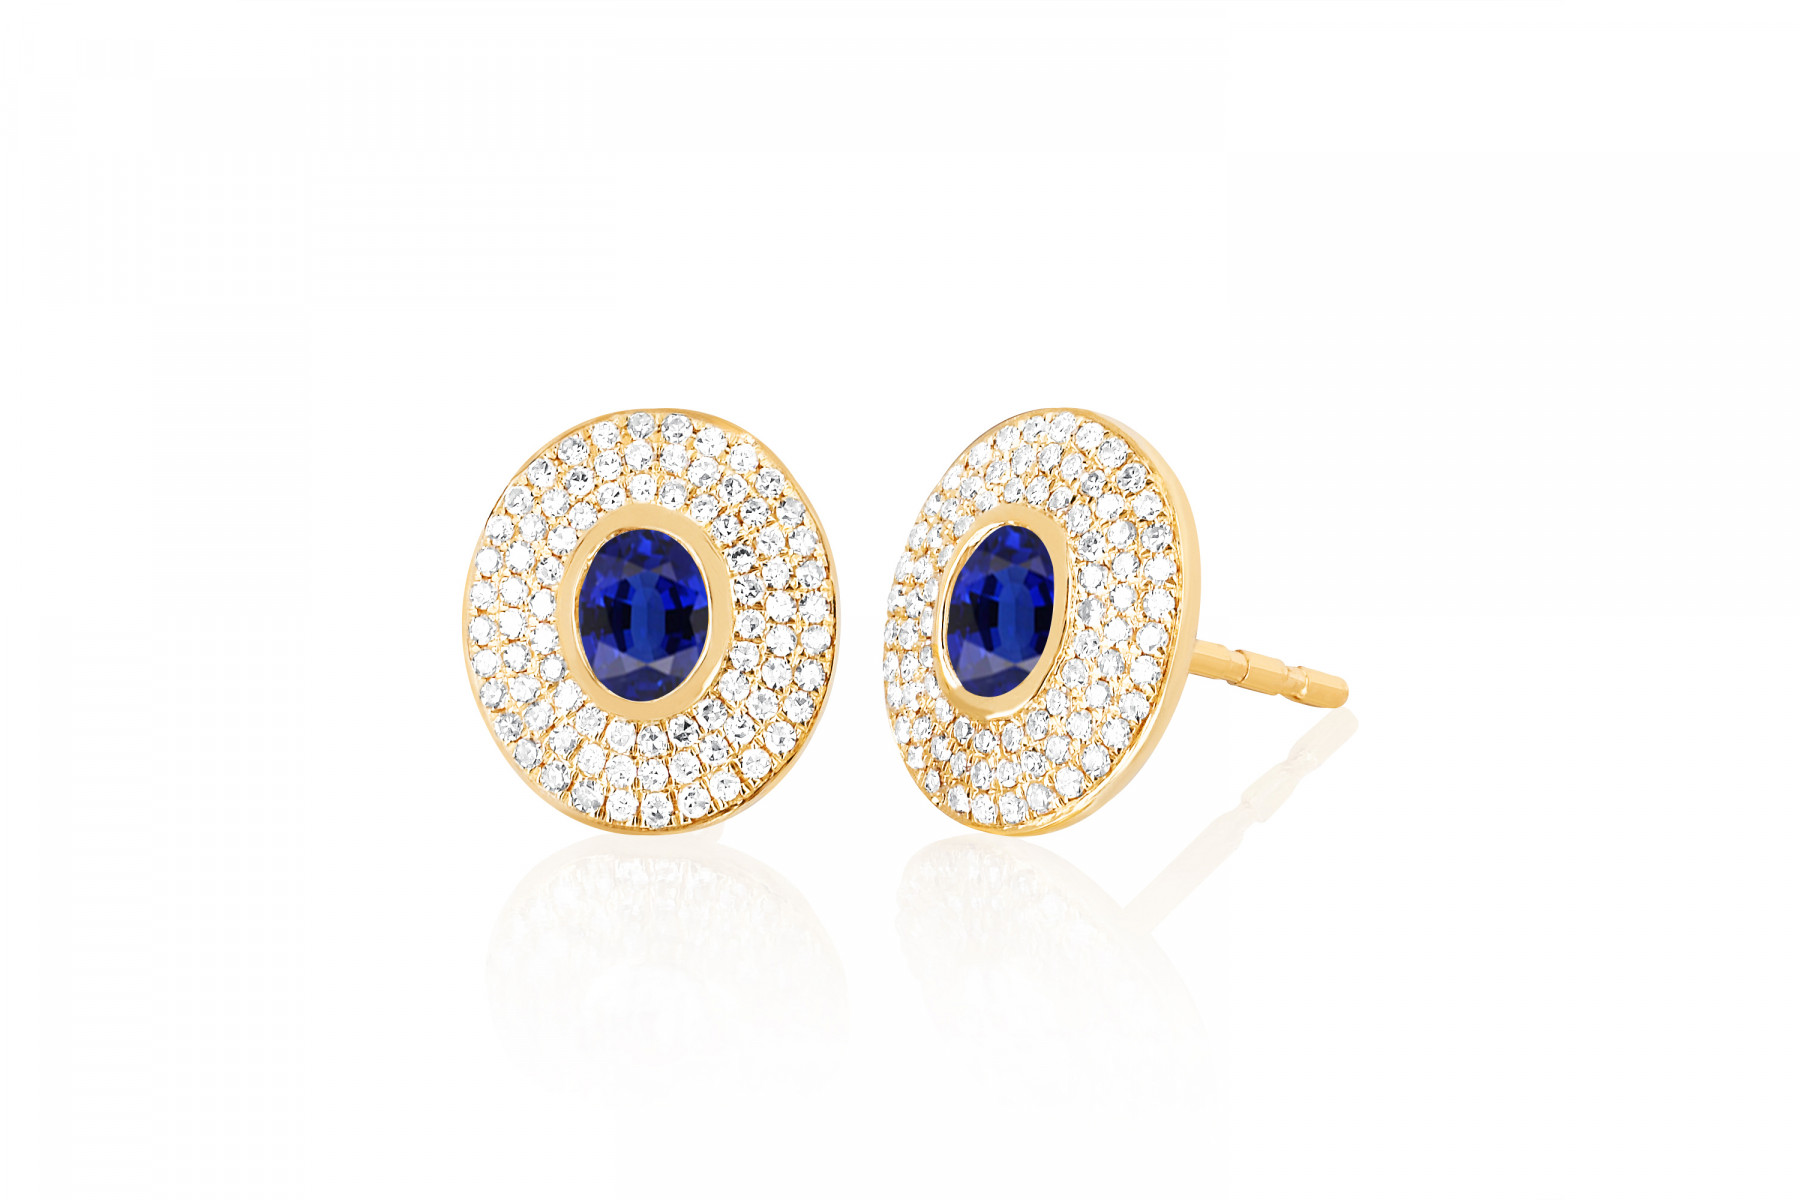 EF Collection Blue Sapphire and Diamond Oval Stud Earrings in yellow gold